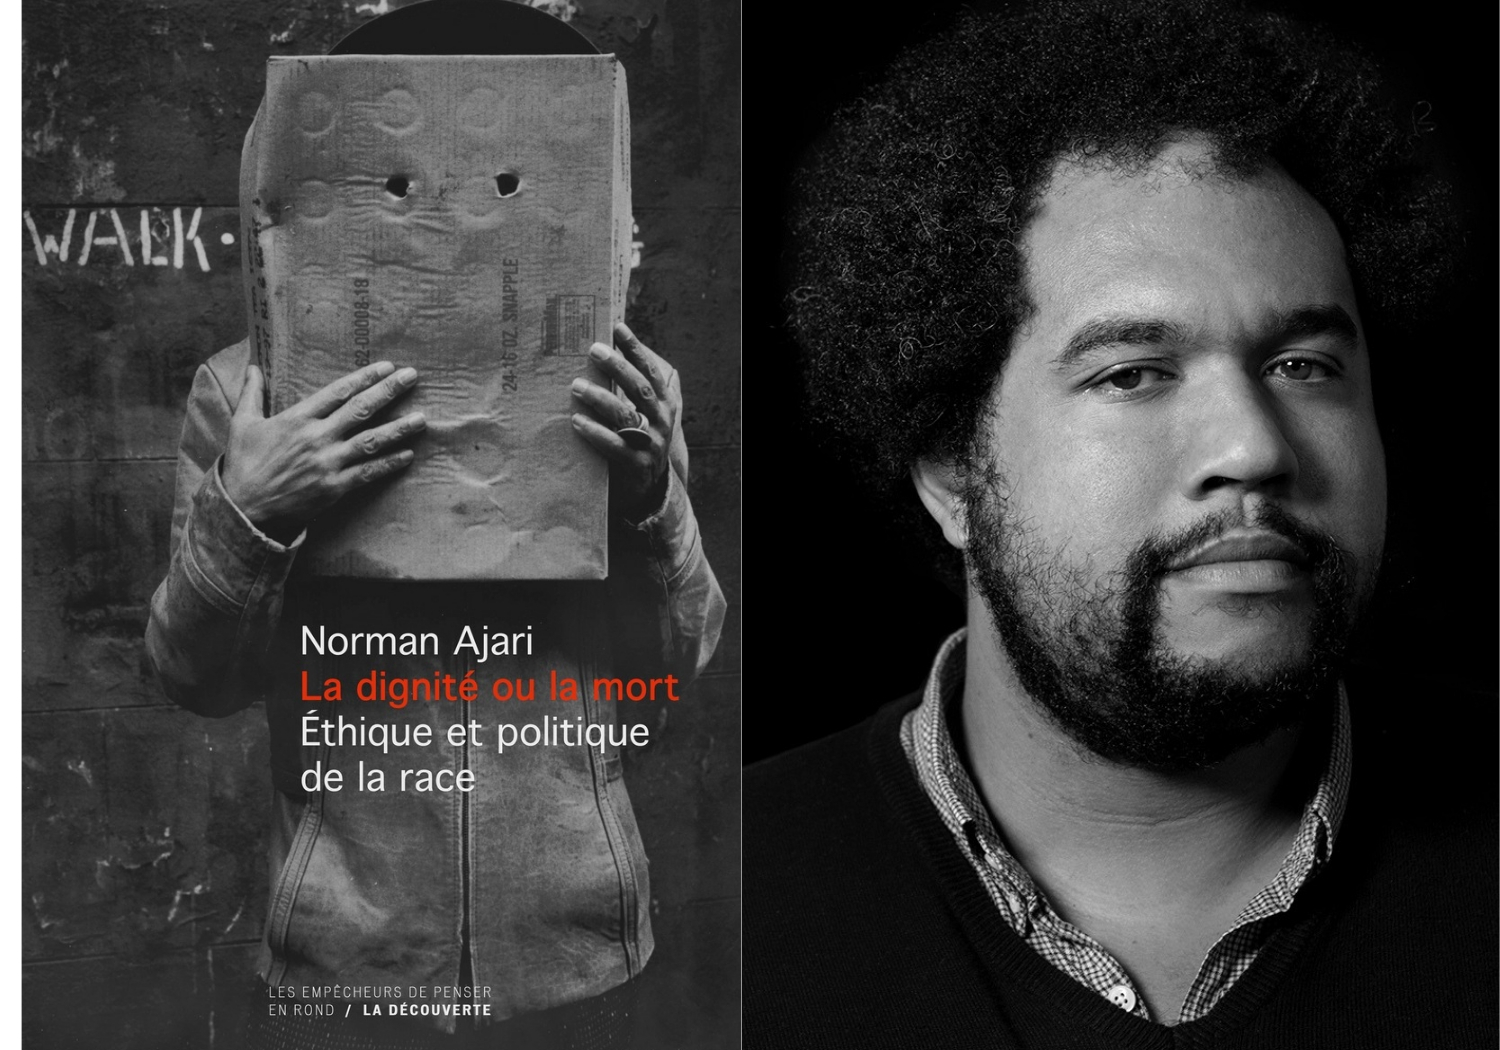 Carré Norman Ajari